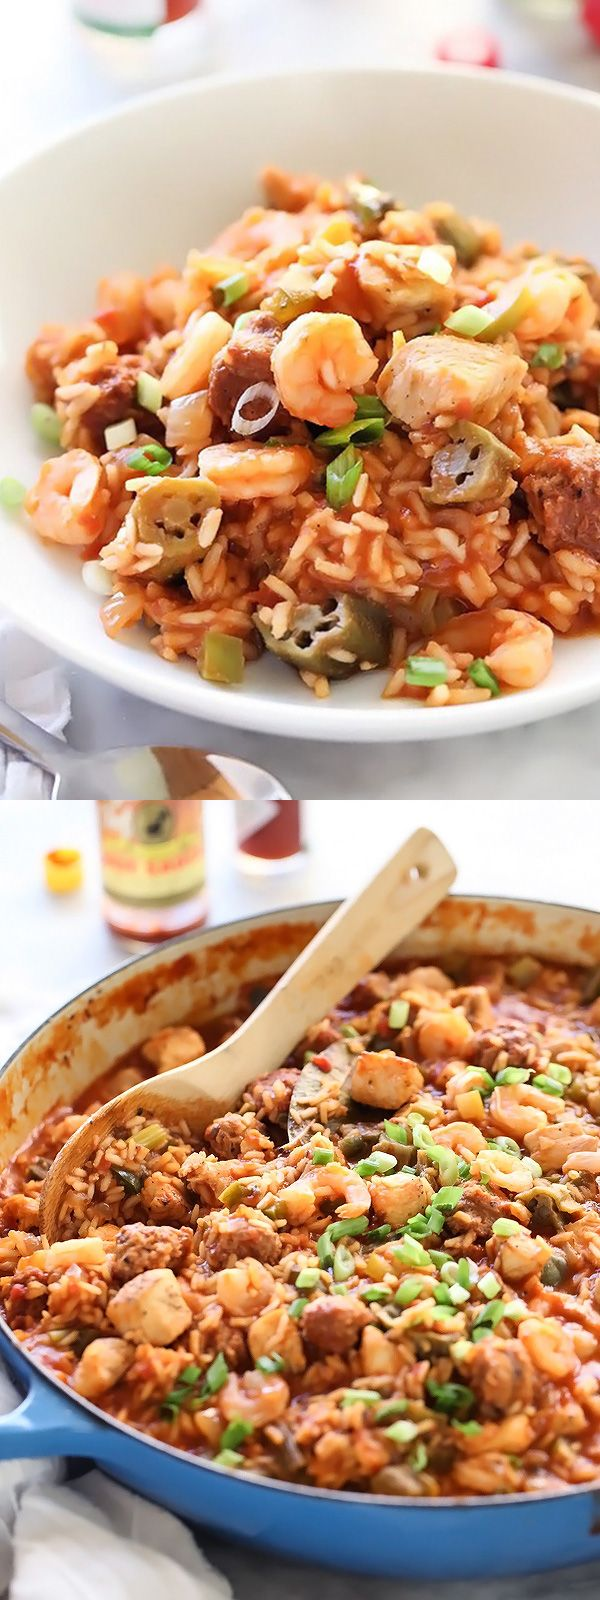 Chicken, Sausage and Shrimp Jambalaya for a one-pot meal that's on the table in under an hour   foodiecrush.com